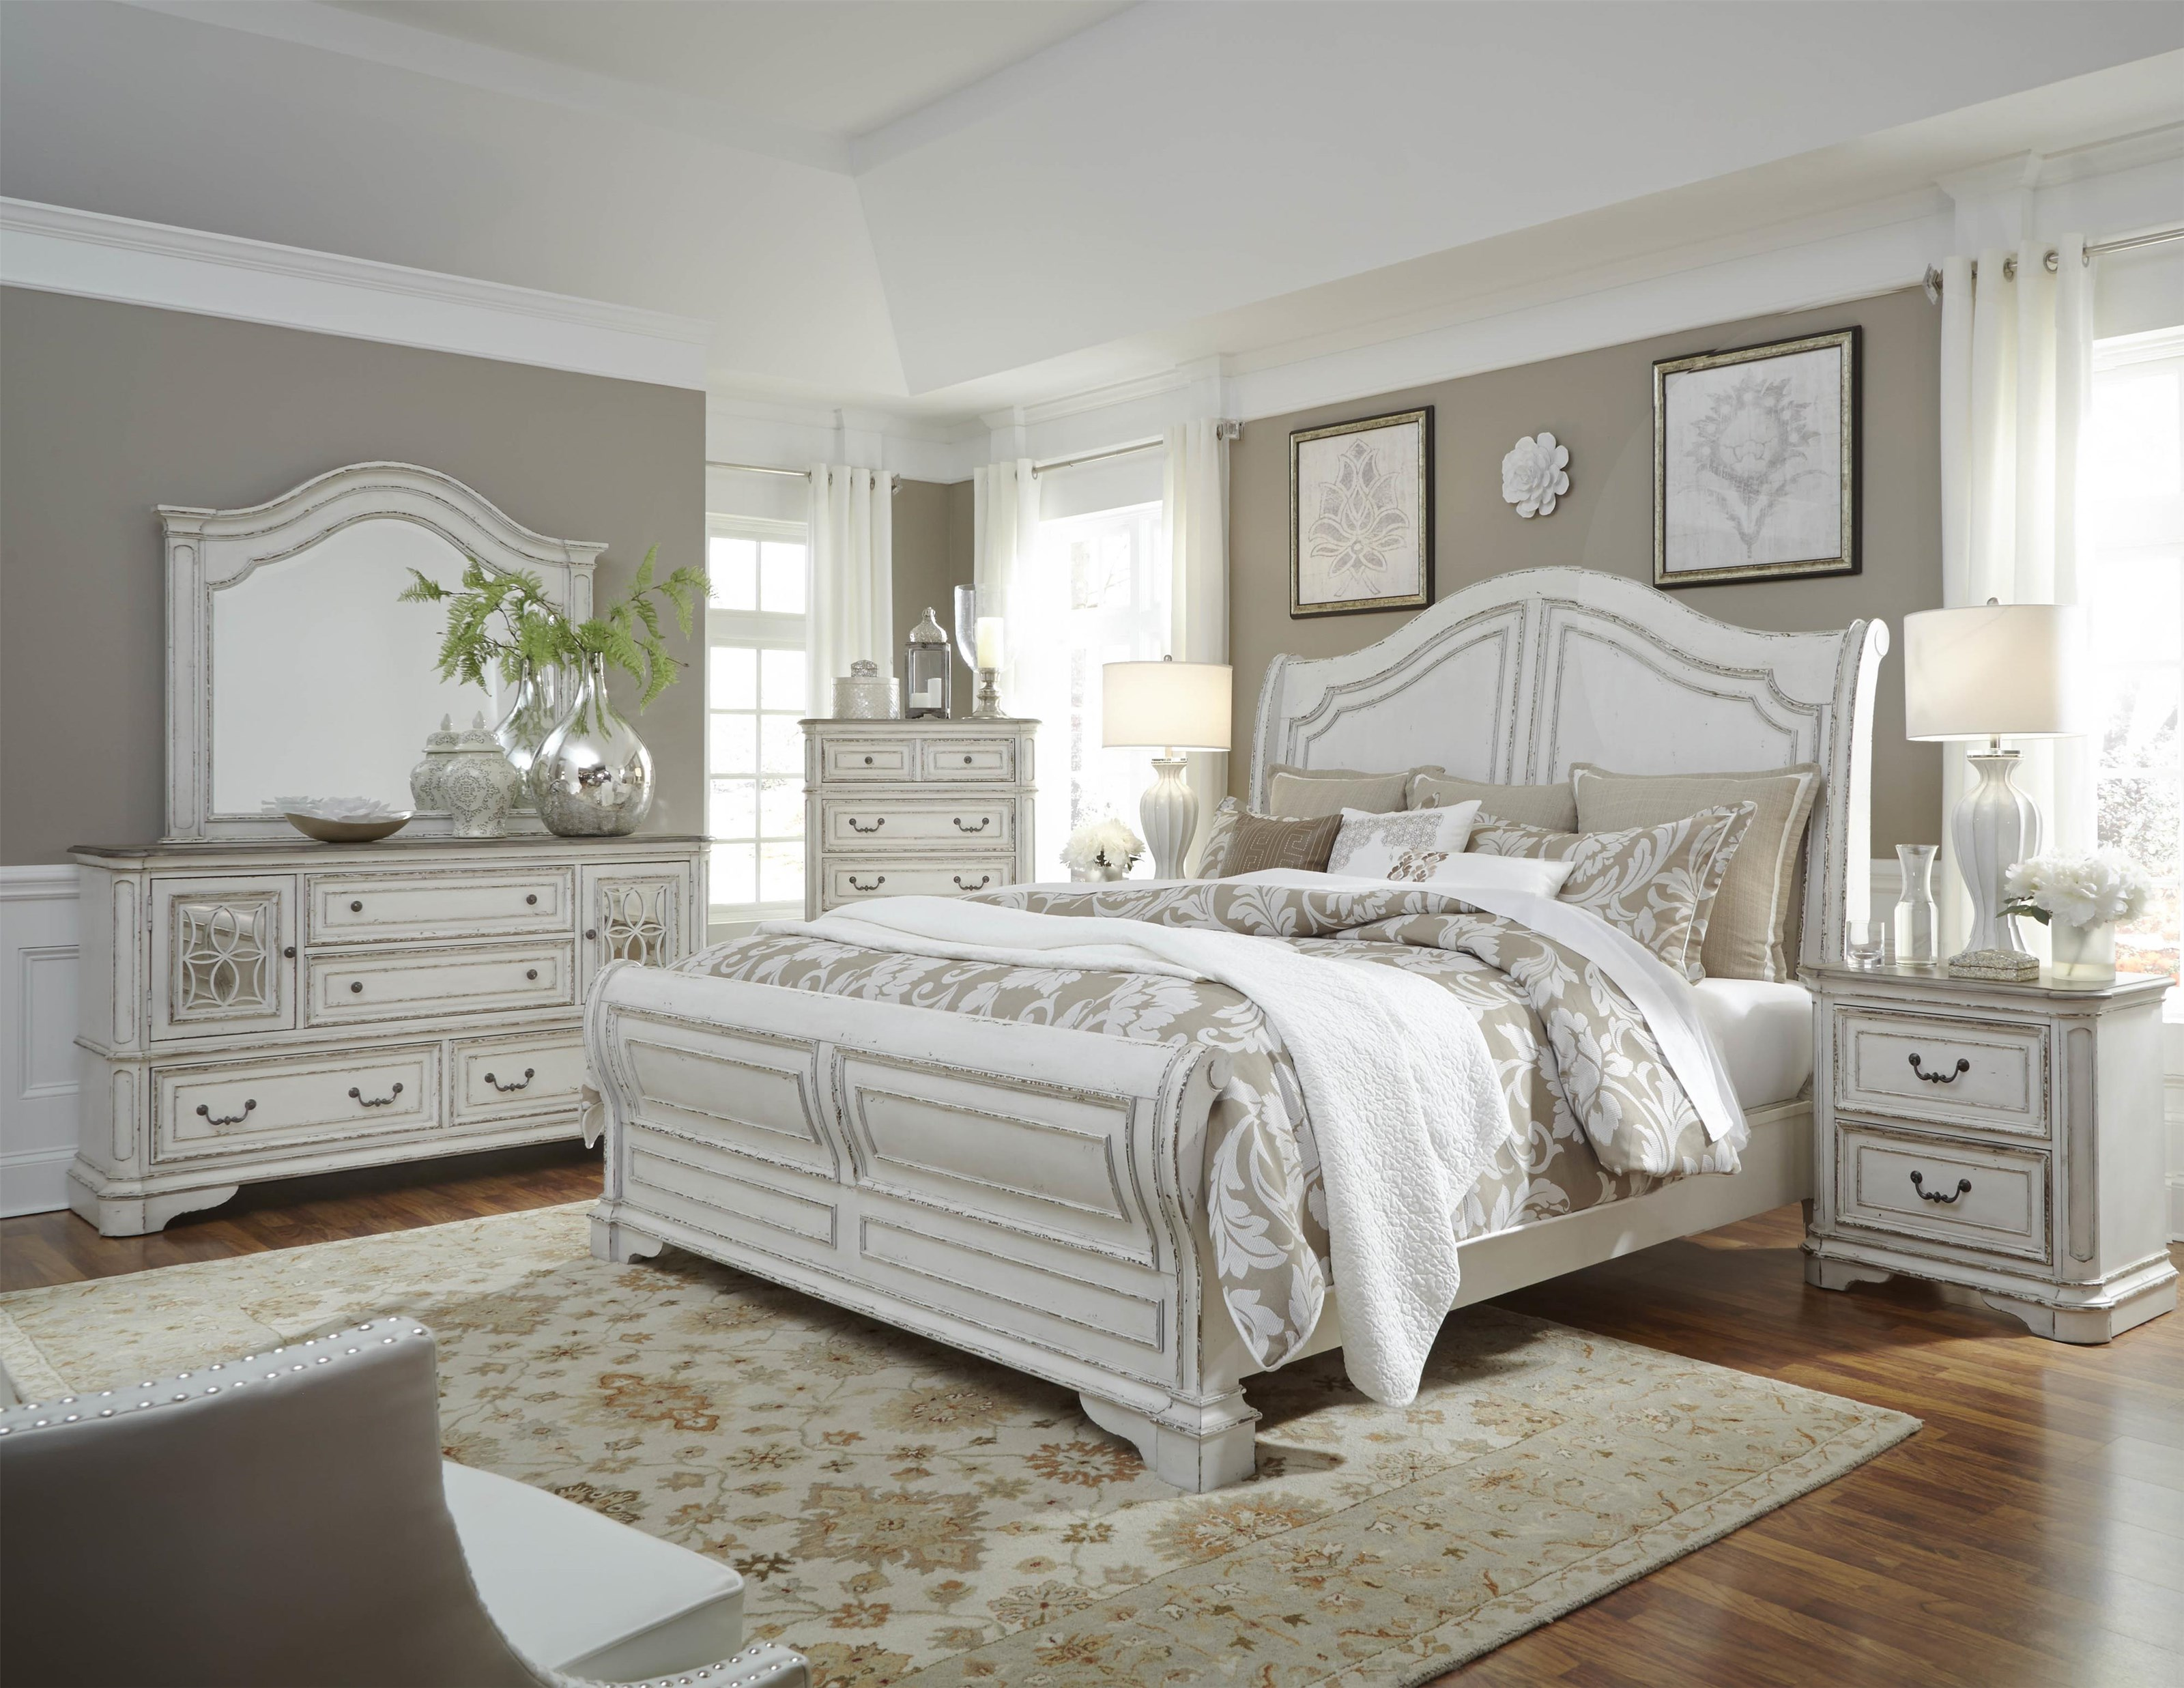 Bedroom Groups | Memphis, Nashville, Jackson, Birmingham Bedroom ...